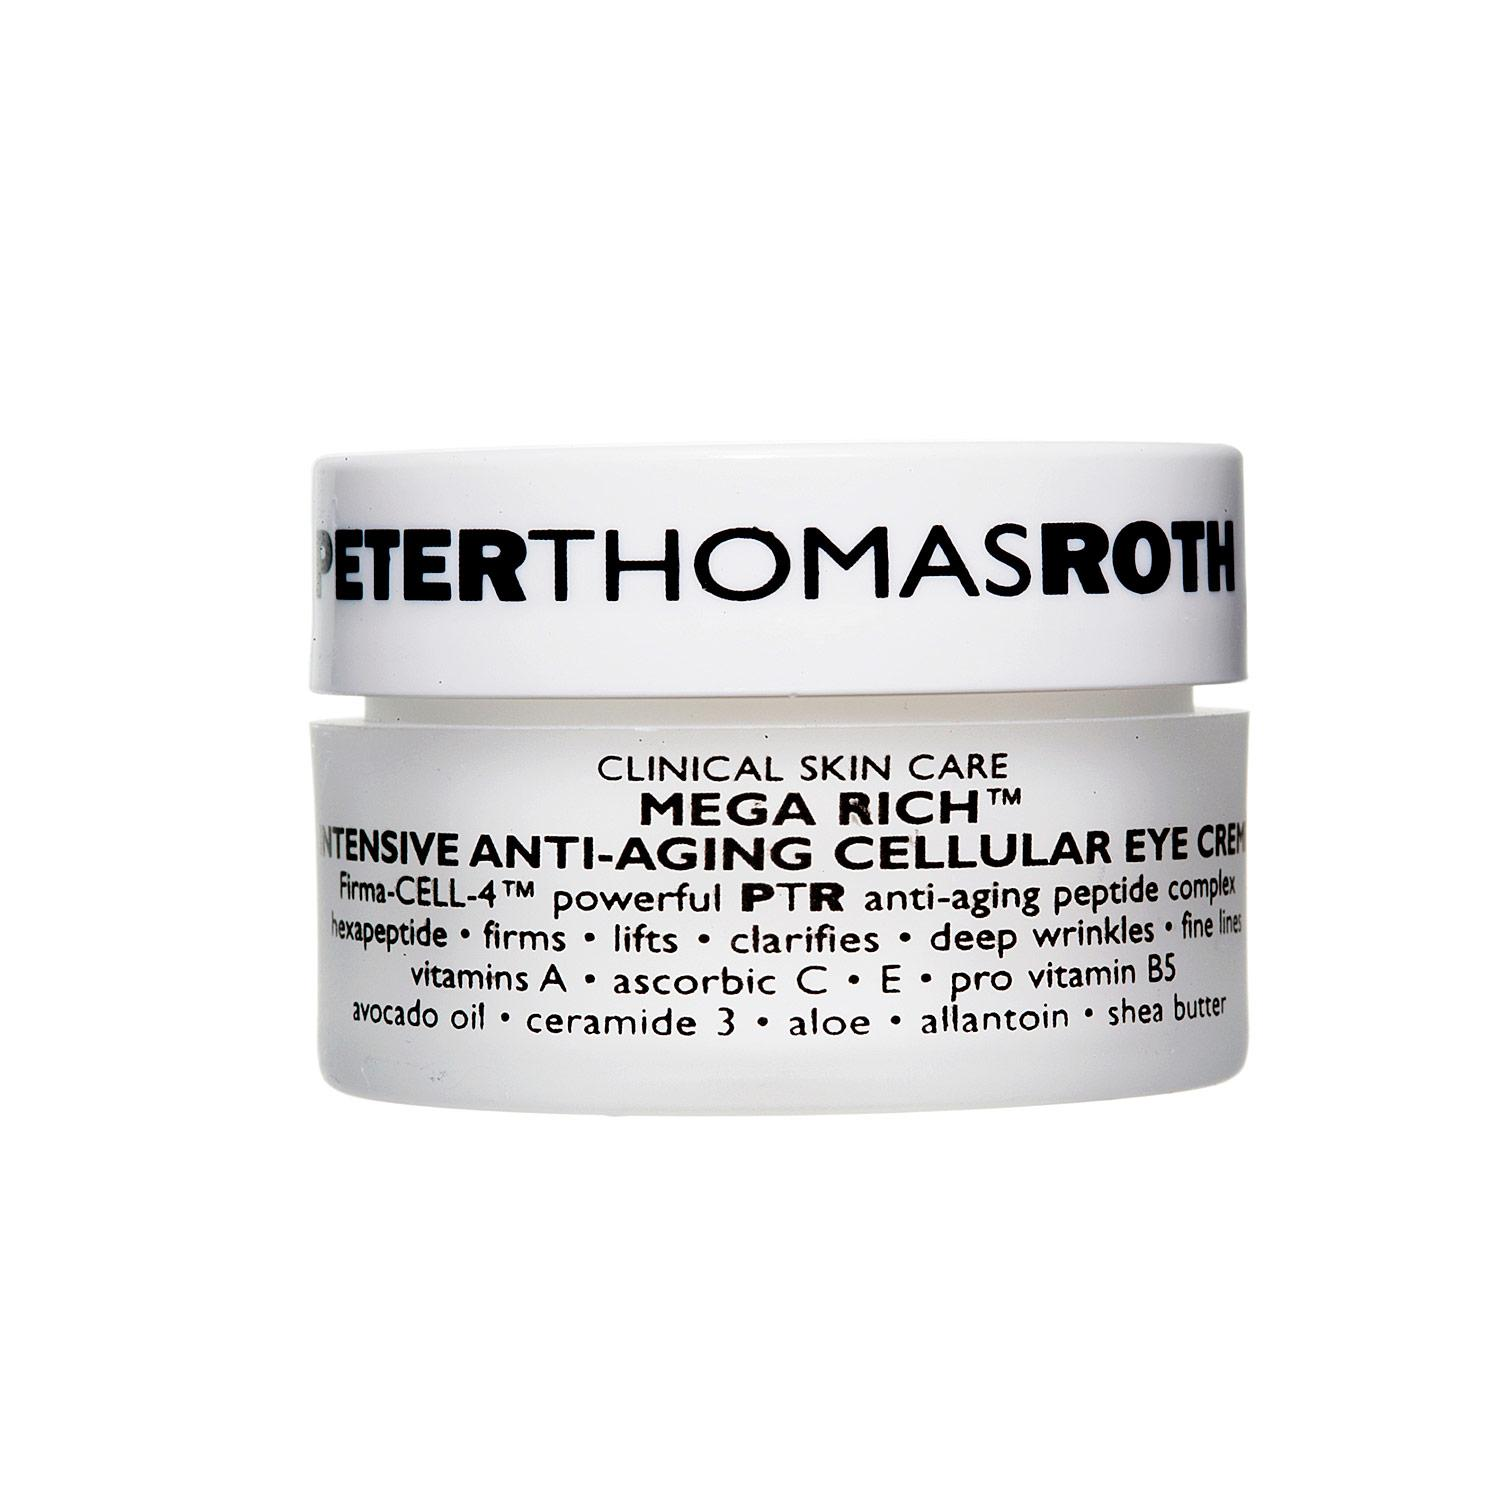 Mega Rich Intensive Anti-Aging Cellular Eye Creme